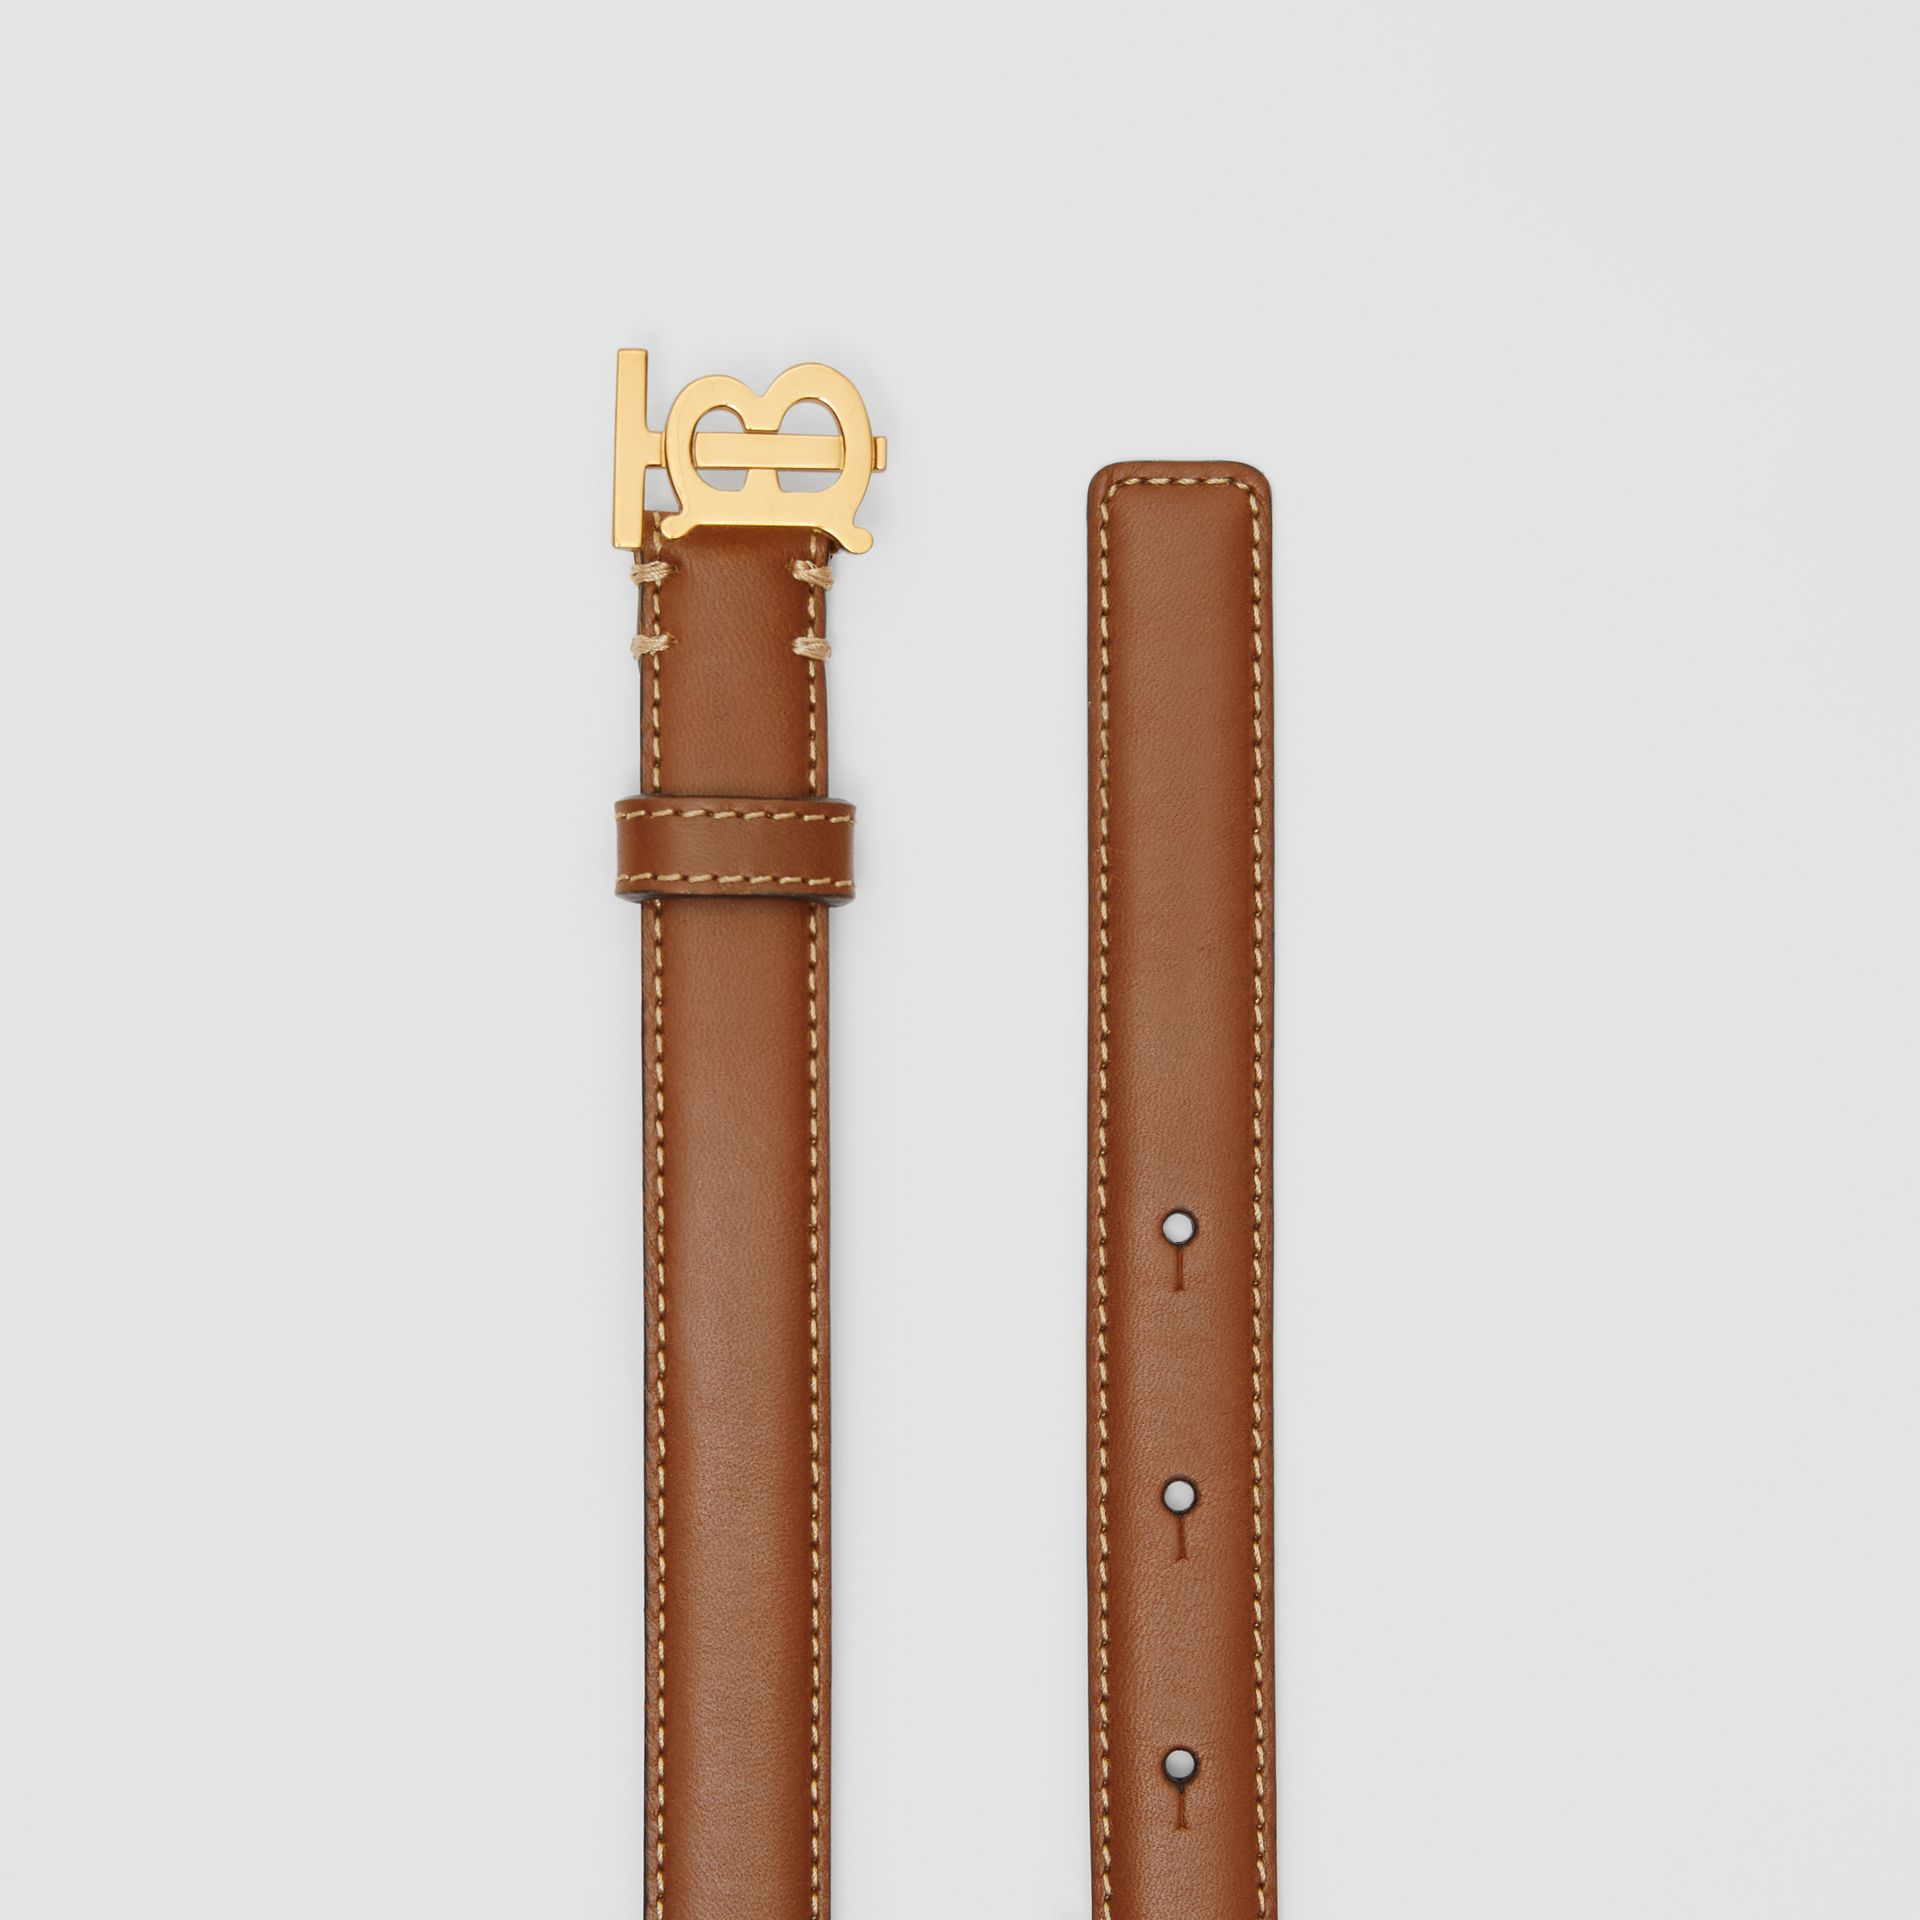 Monogram Motif Topstitched Leather Belt in Tan/light Gold - Women | Burberry United Kingdom - gallery image 5